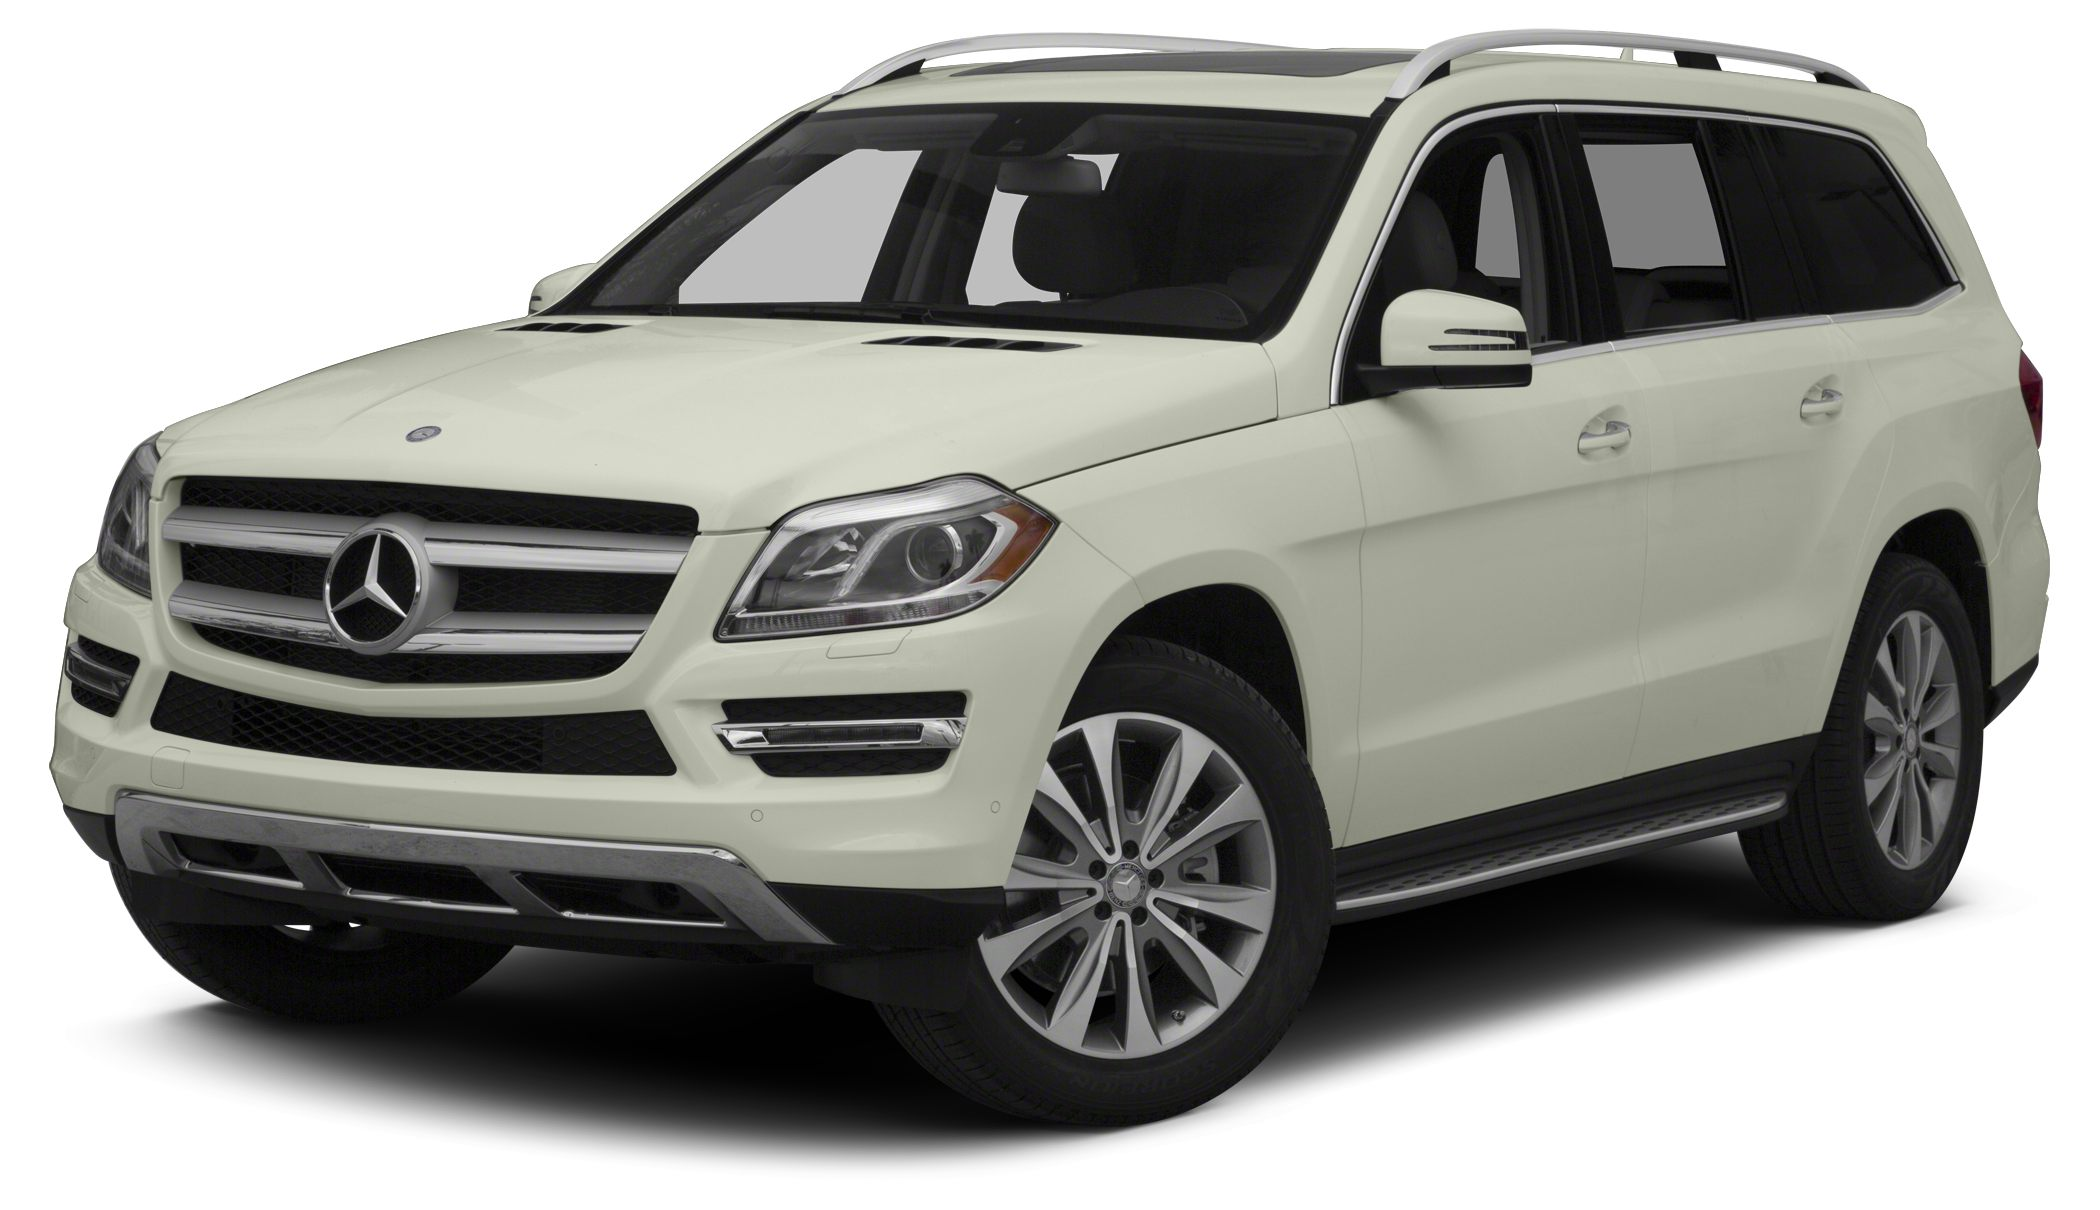 2013 MERCEDES GL-Class GL450 4MATIC THIS GL450 HAD MSRP OF 72000 PANORAMIC ROOF ENTERTAINMENT